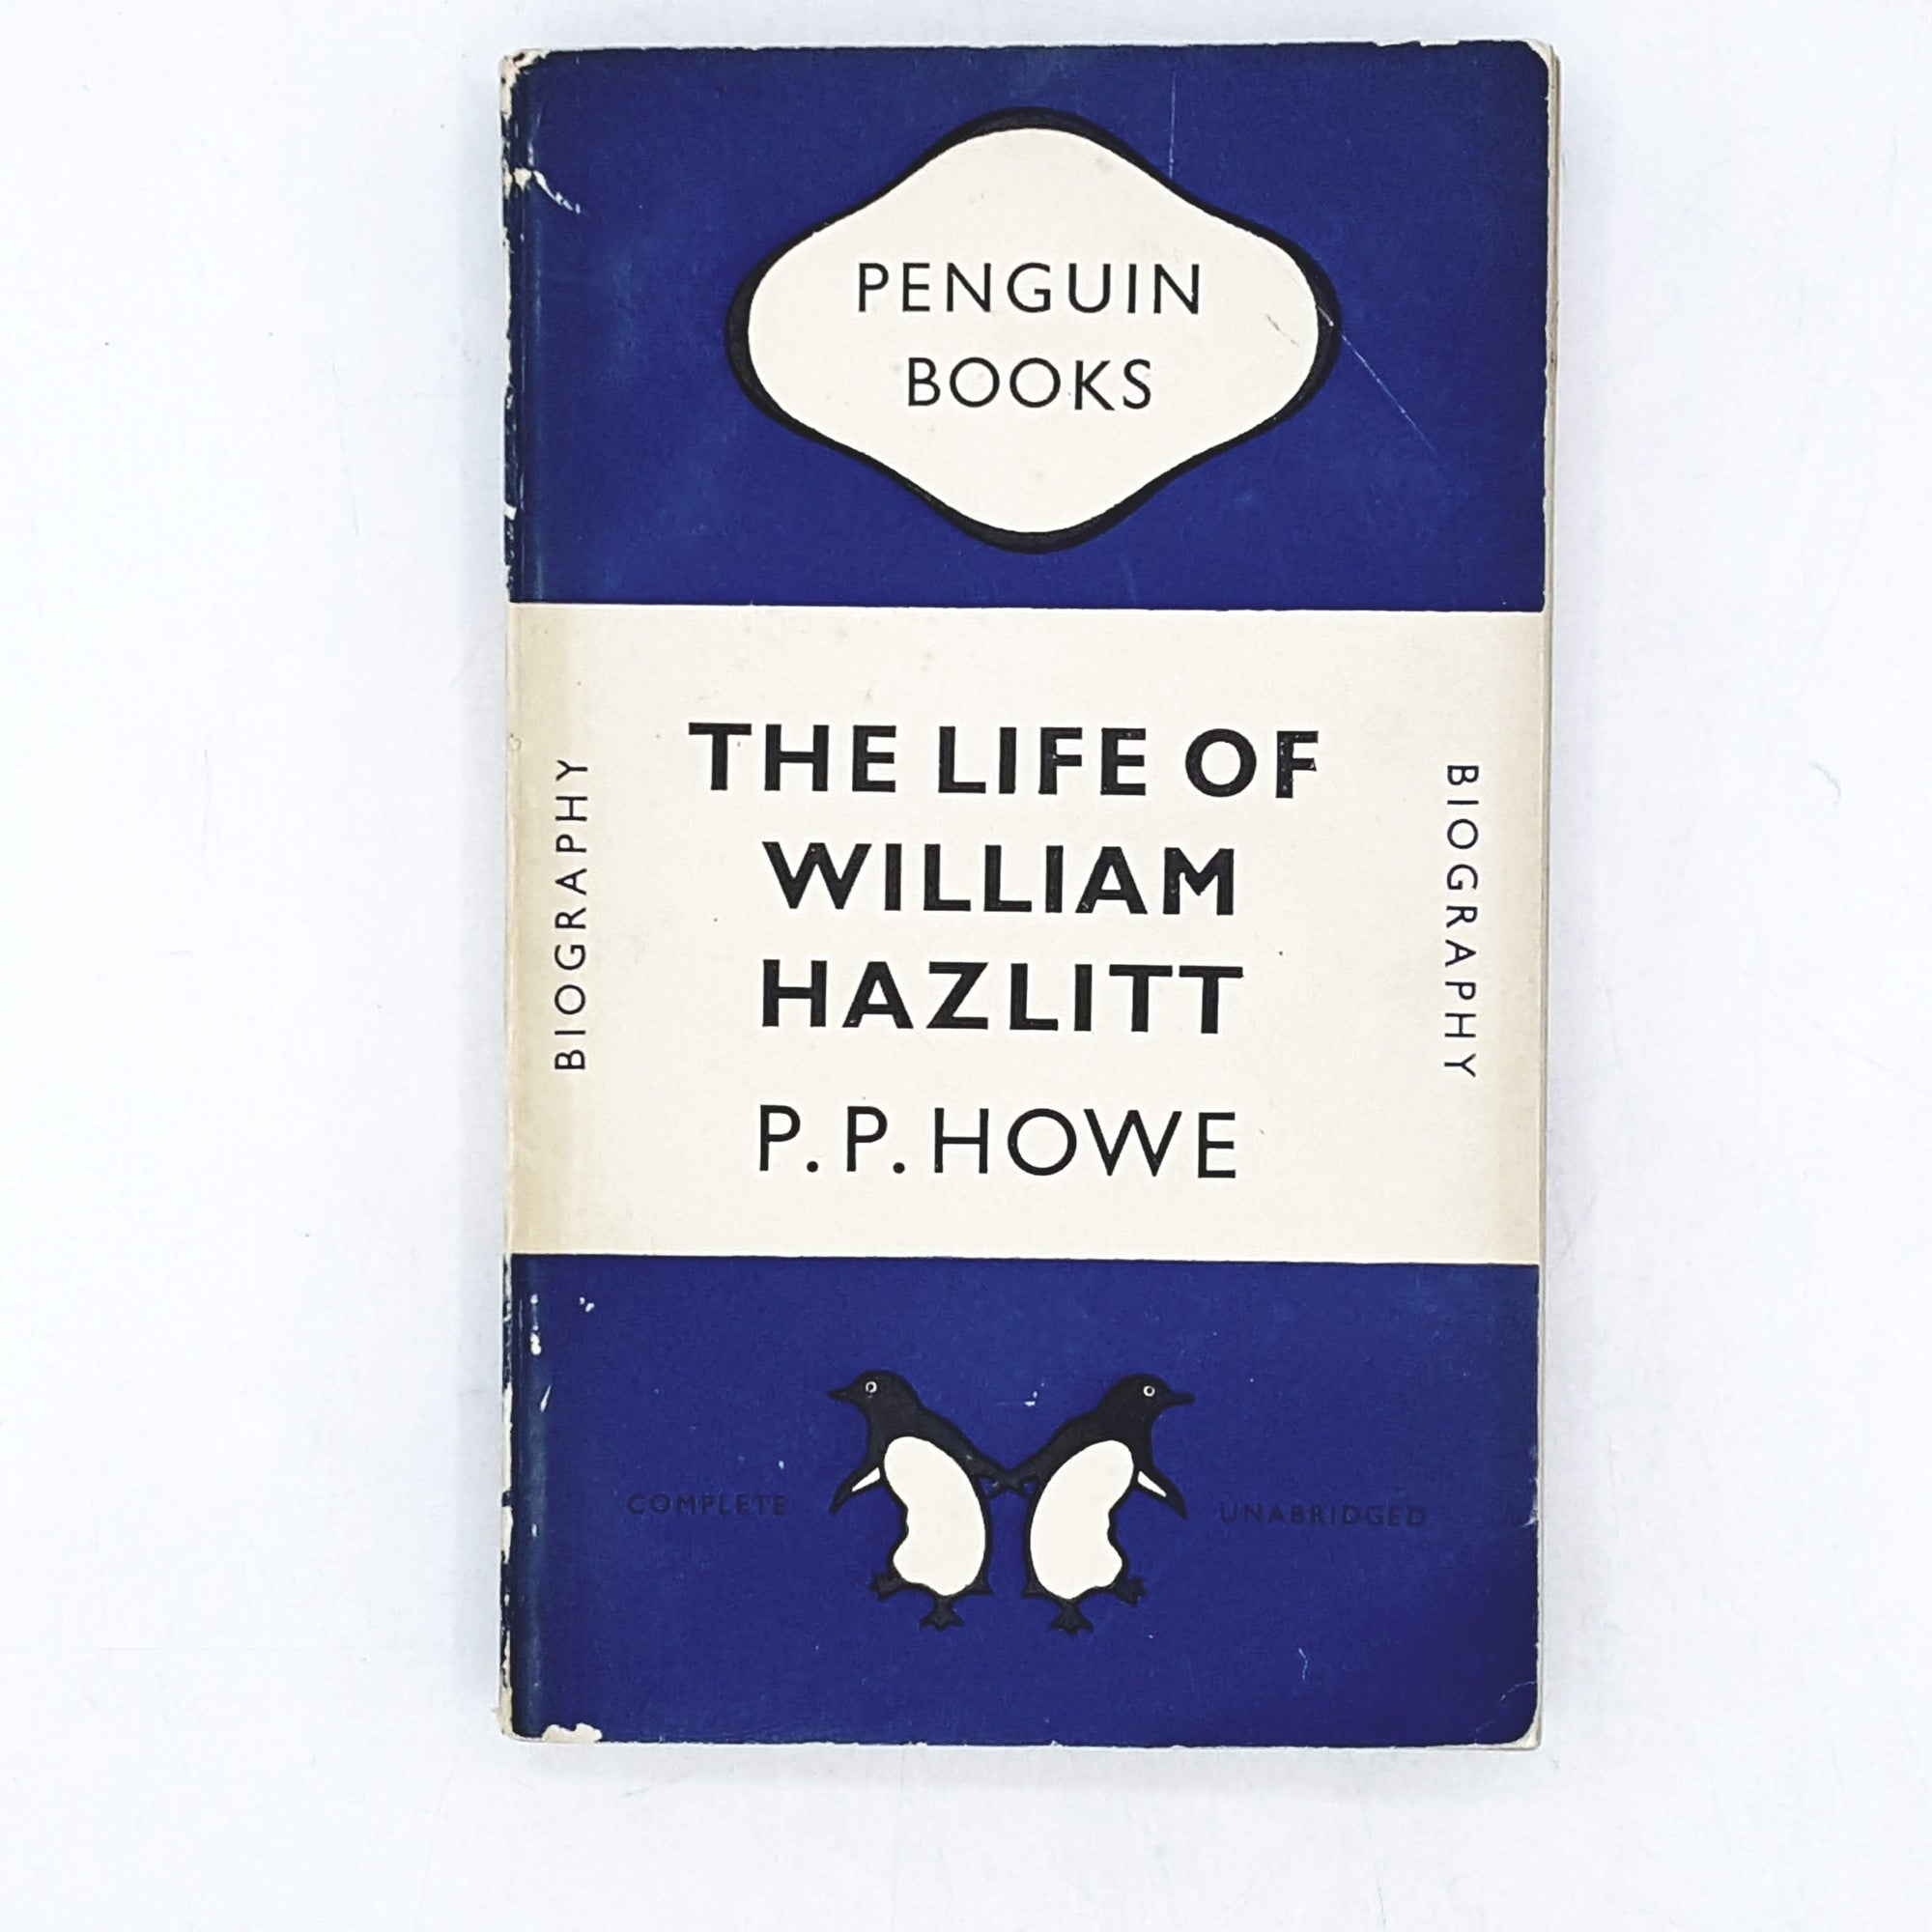 Vintage Penguin The Life of William Hazlitt by P. P. Howe 1949